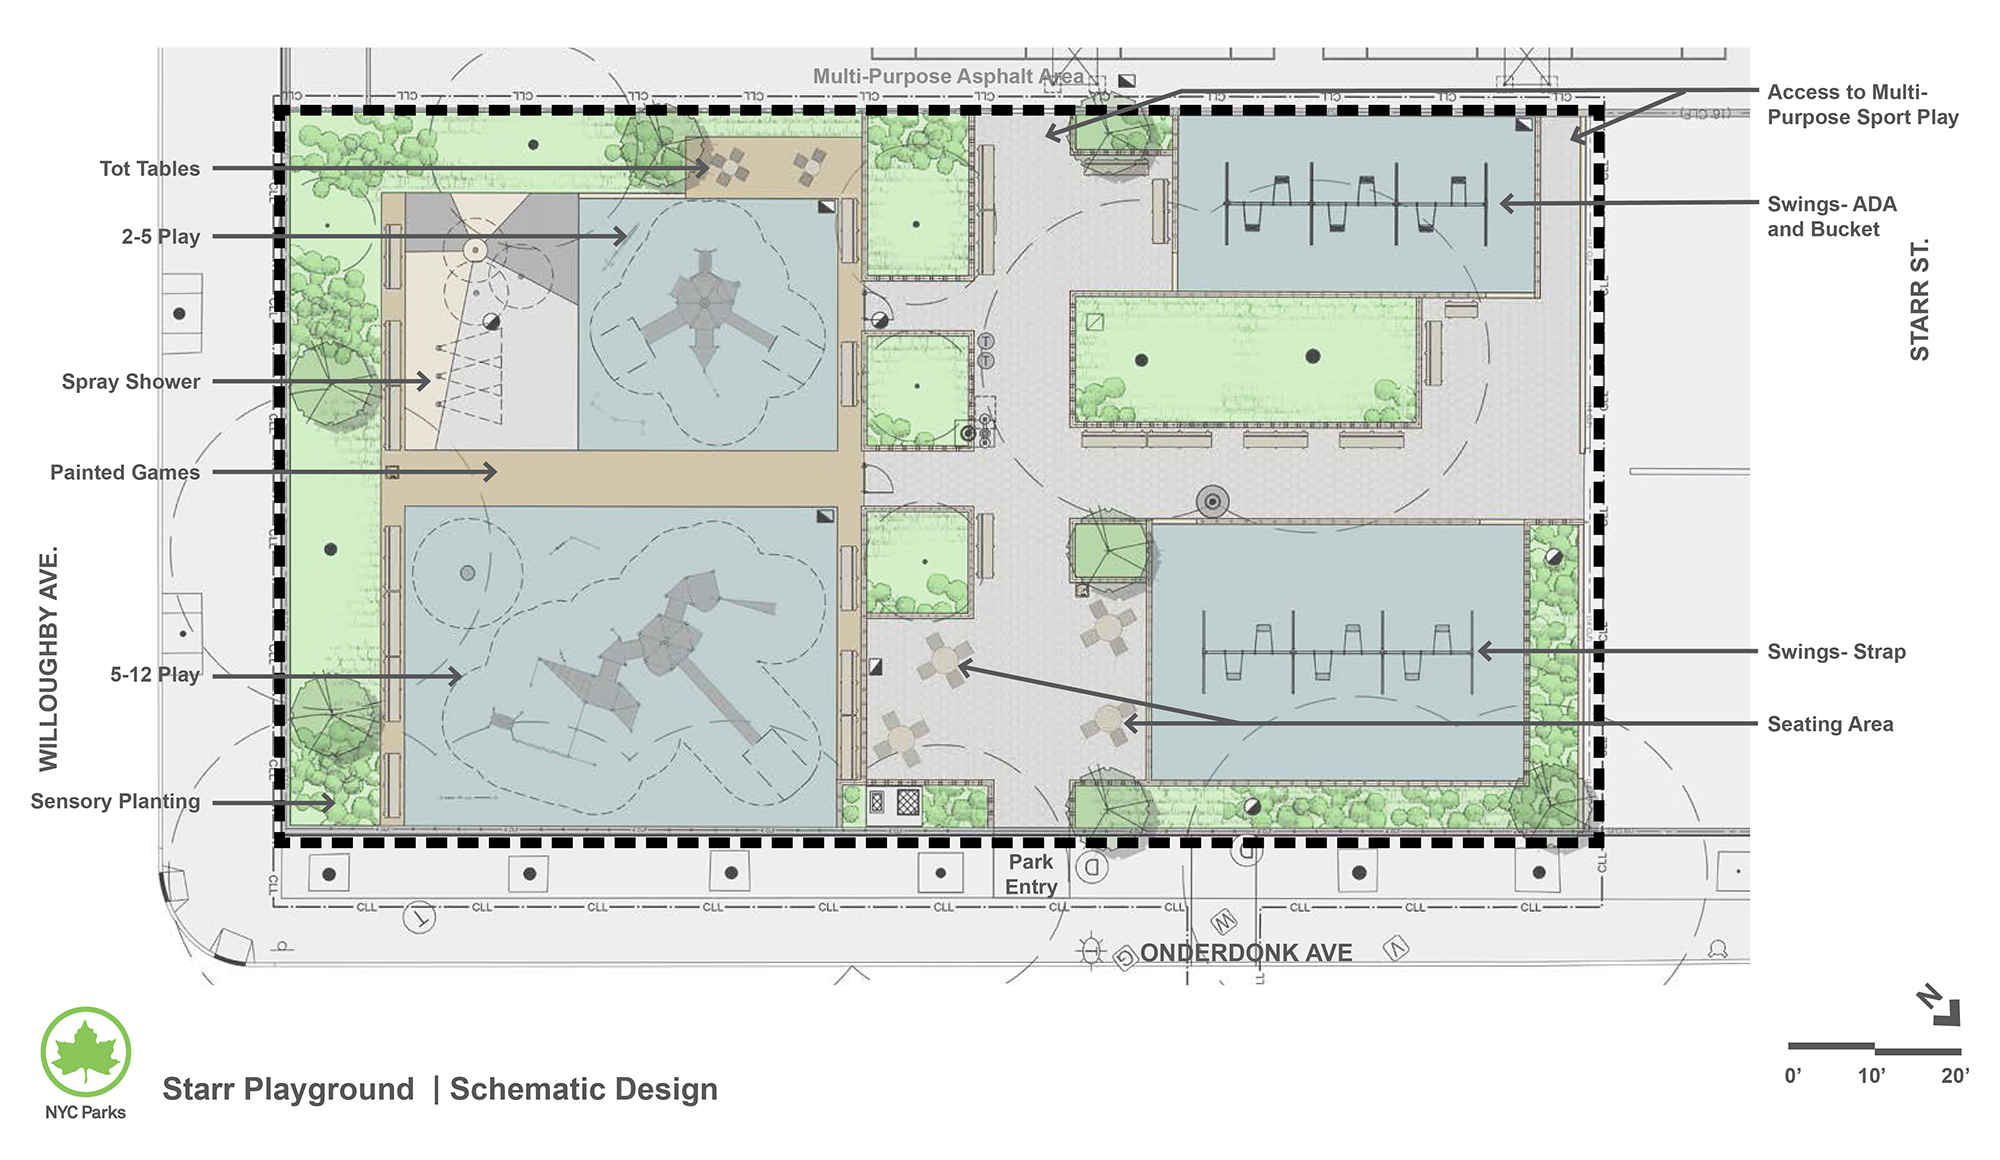 Design of Starr Playground Play Area and Spray Shower Reconstruction